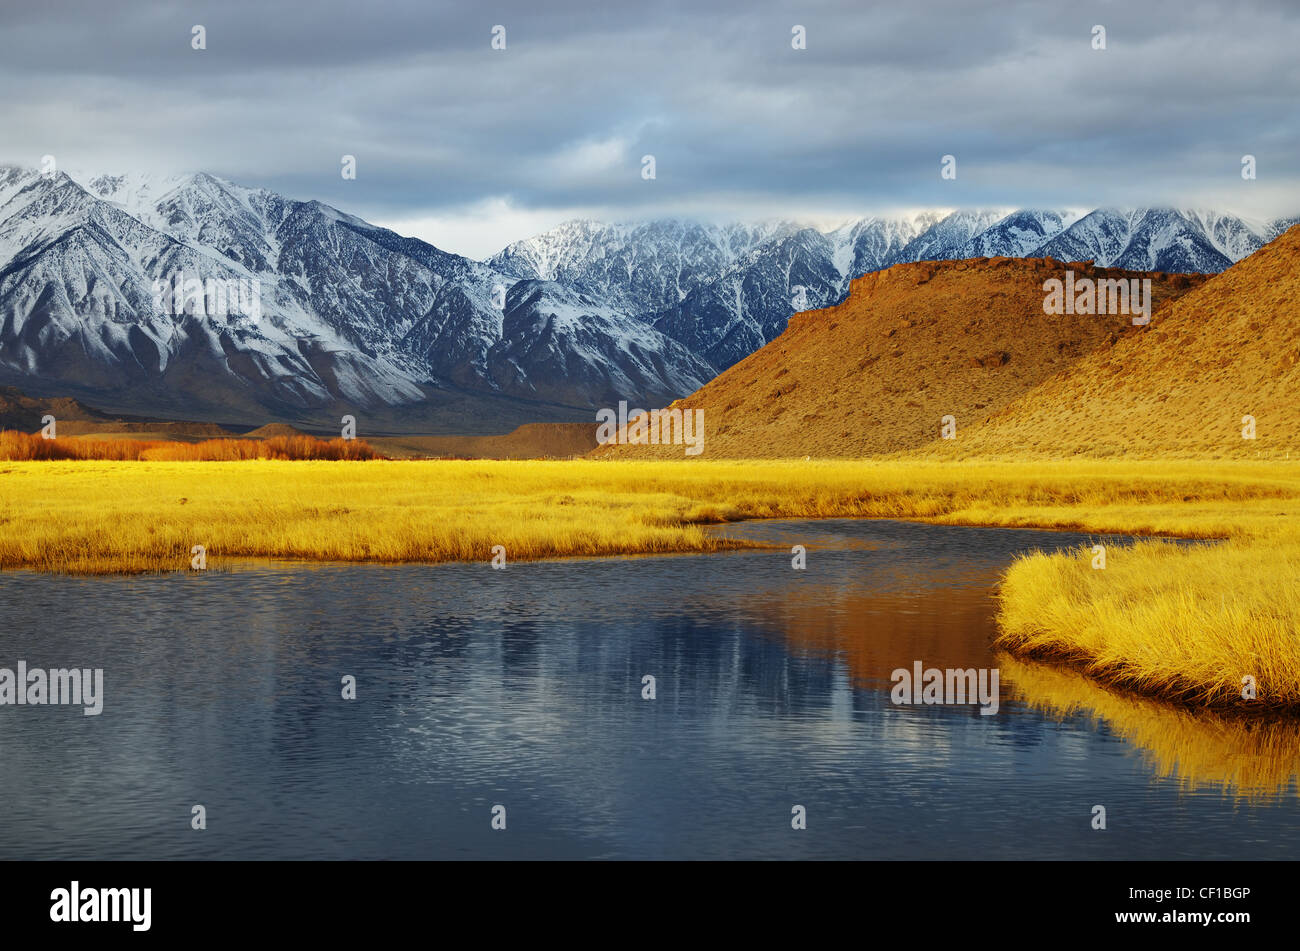 overcast winter mountain valley landscape with golden meadow from the Owens Valley - Stock Image